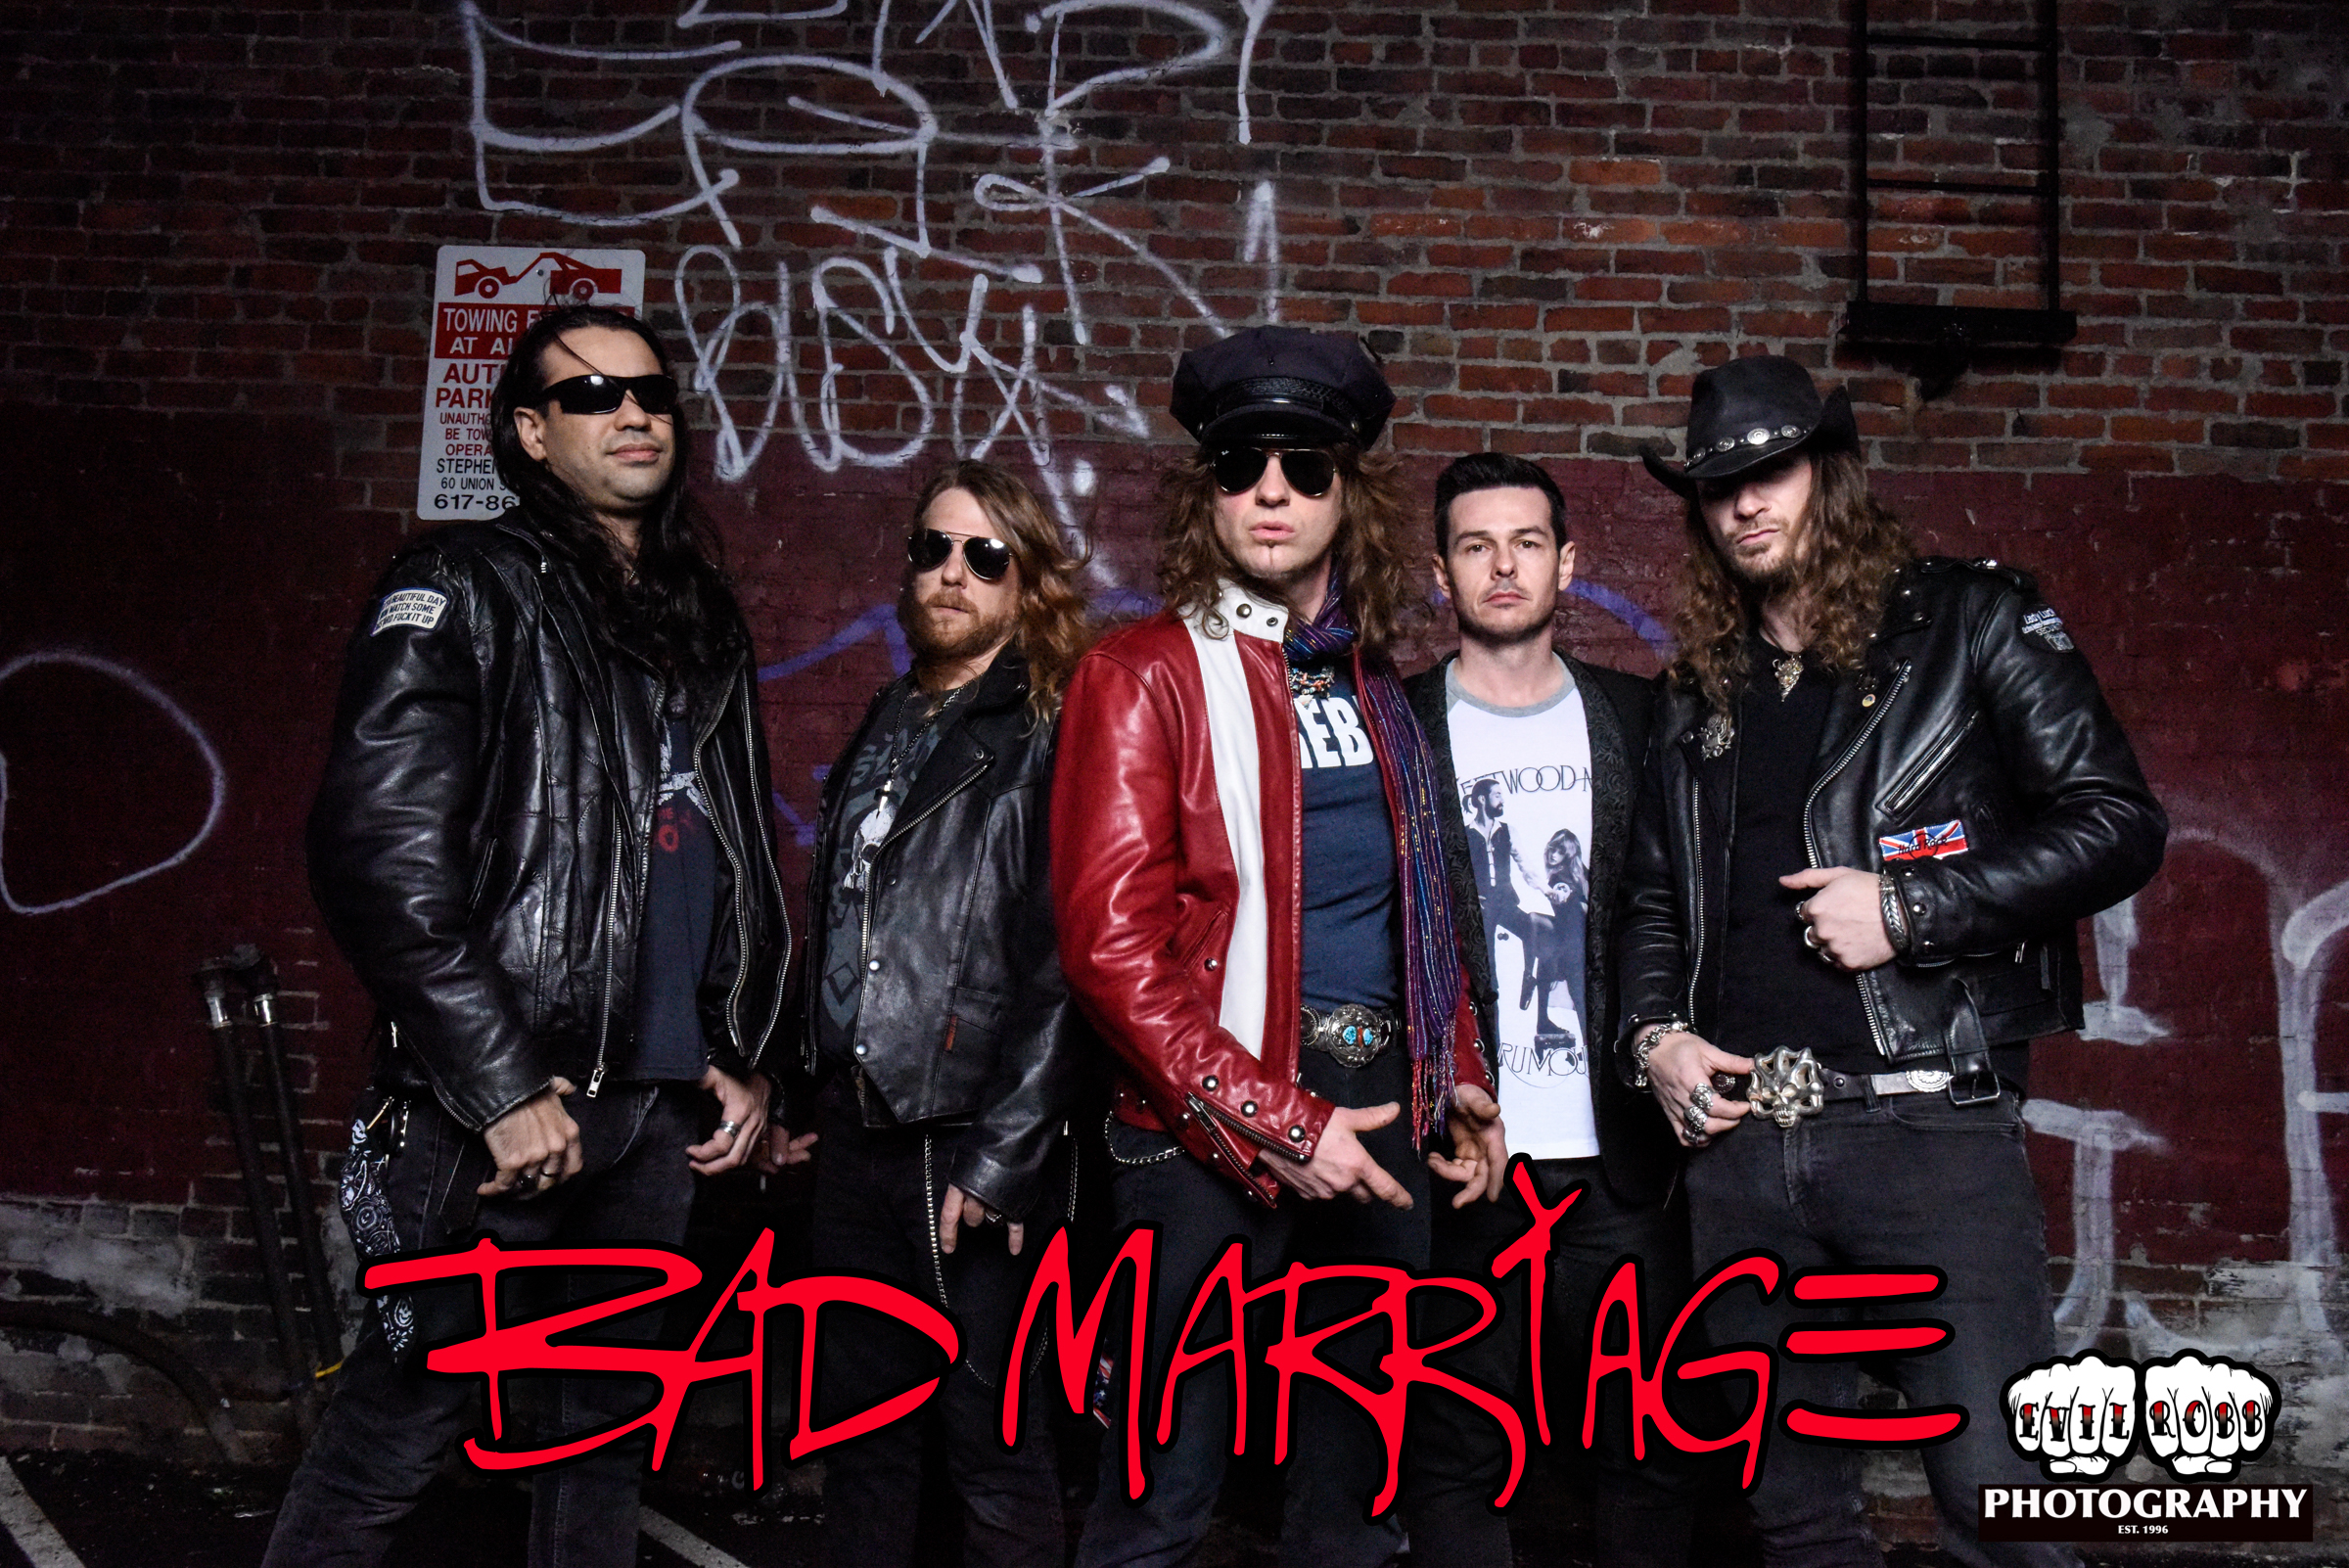 introducing bad marriage a hard rock band from boston